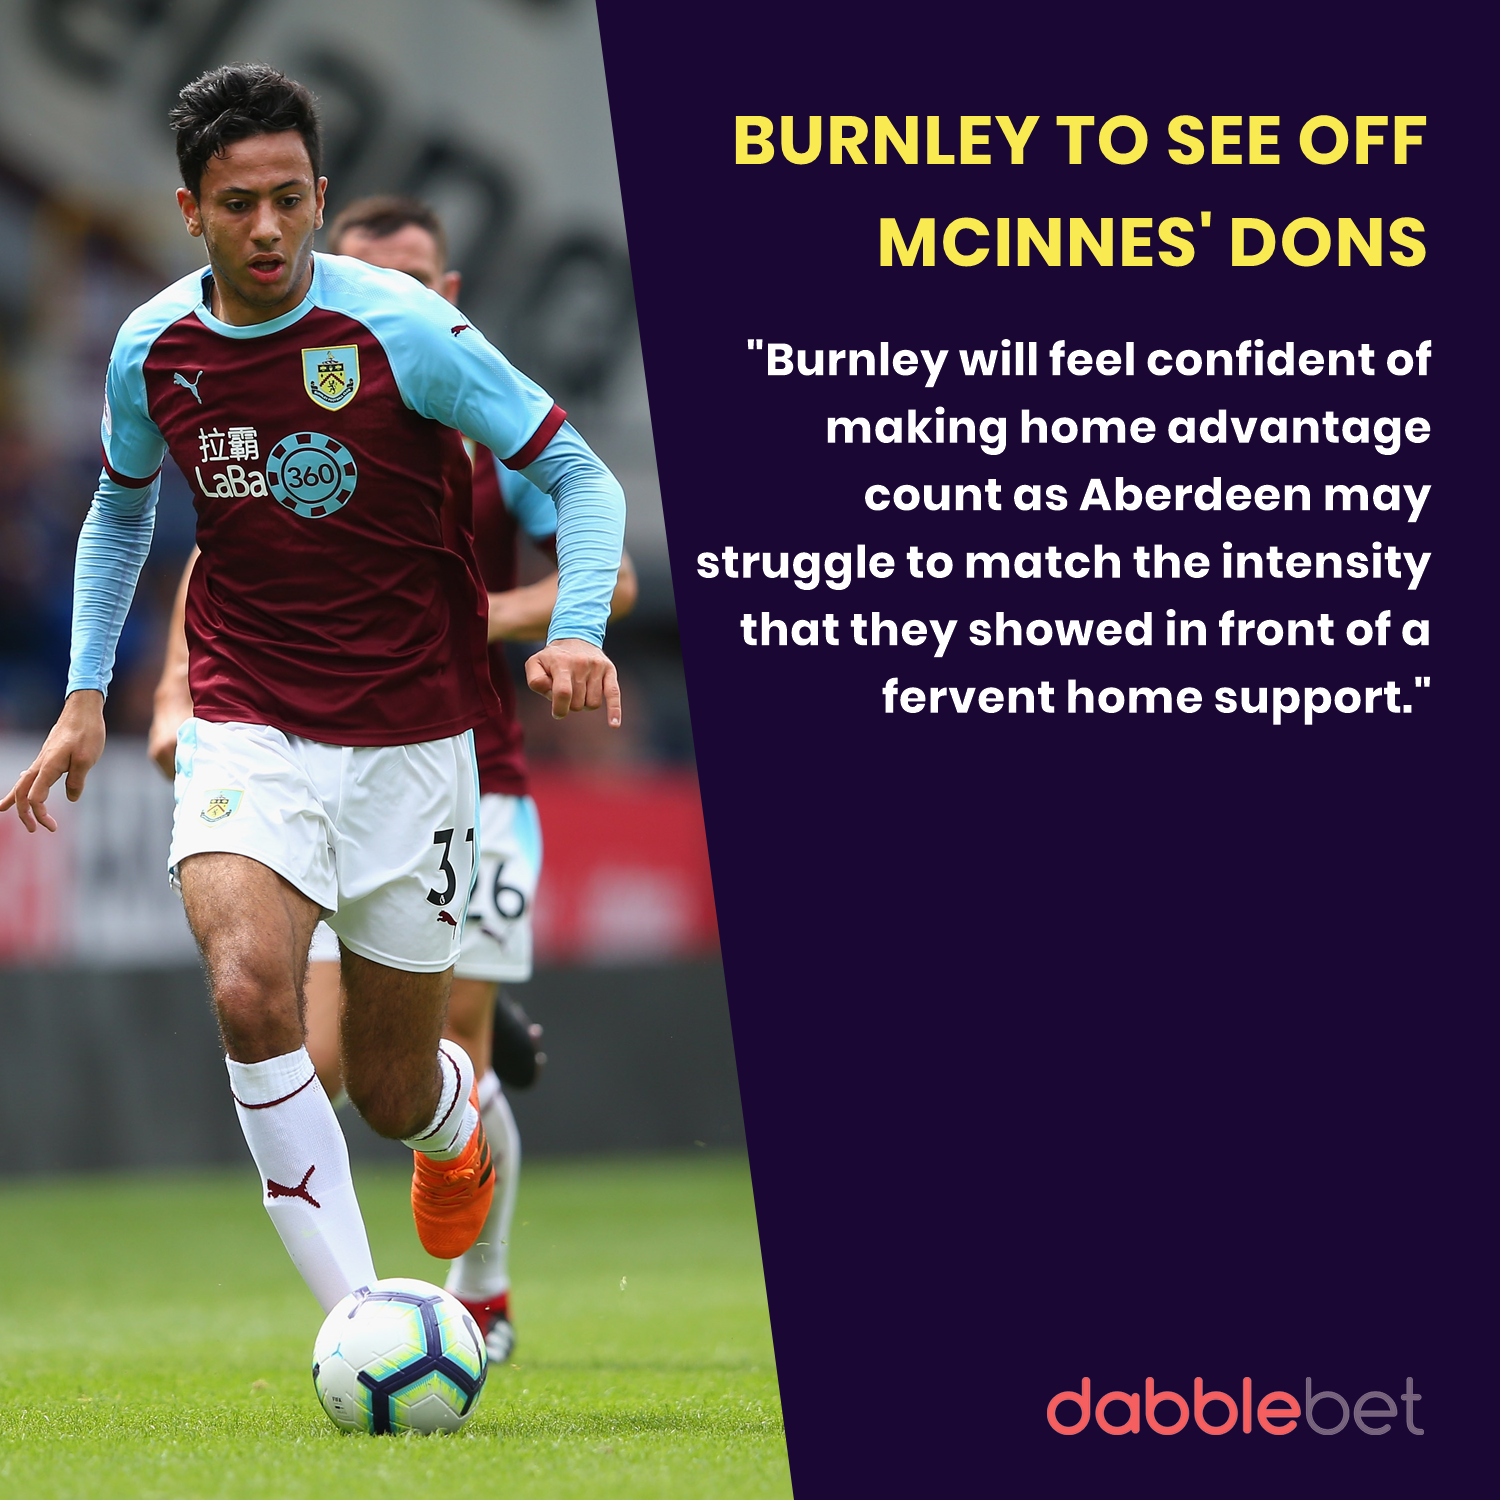 Burnley Aberdeen graphic